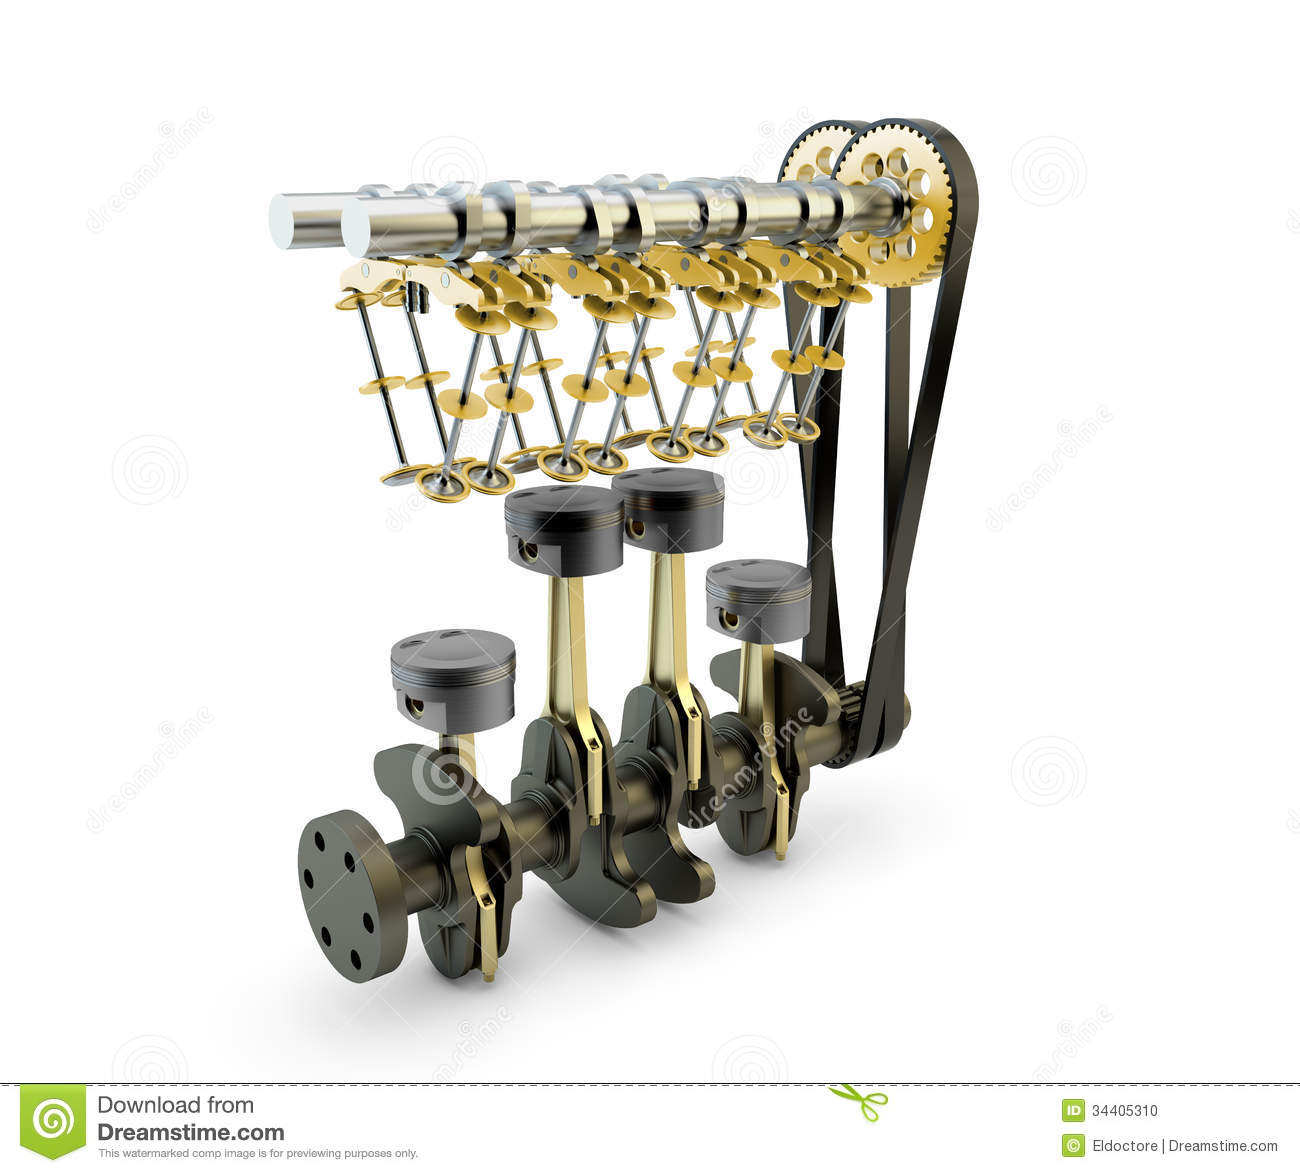 engine with pistons valves crankshaft and camshaft stock photo image of camshaft part 34405310. Black Bedroom Furniture Sets. Home Design Ideas